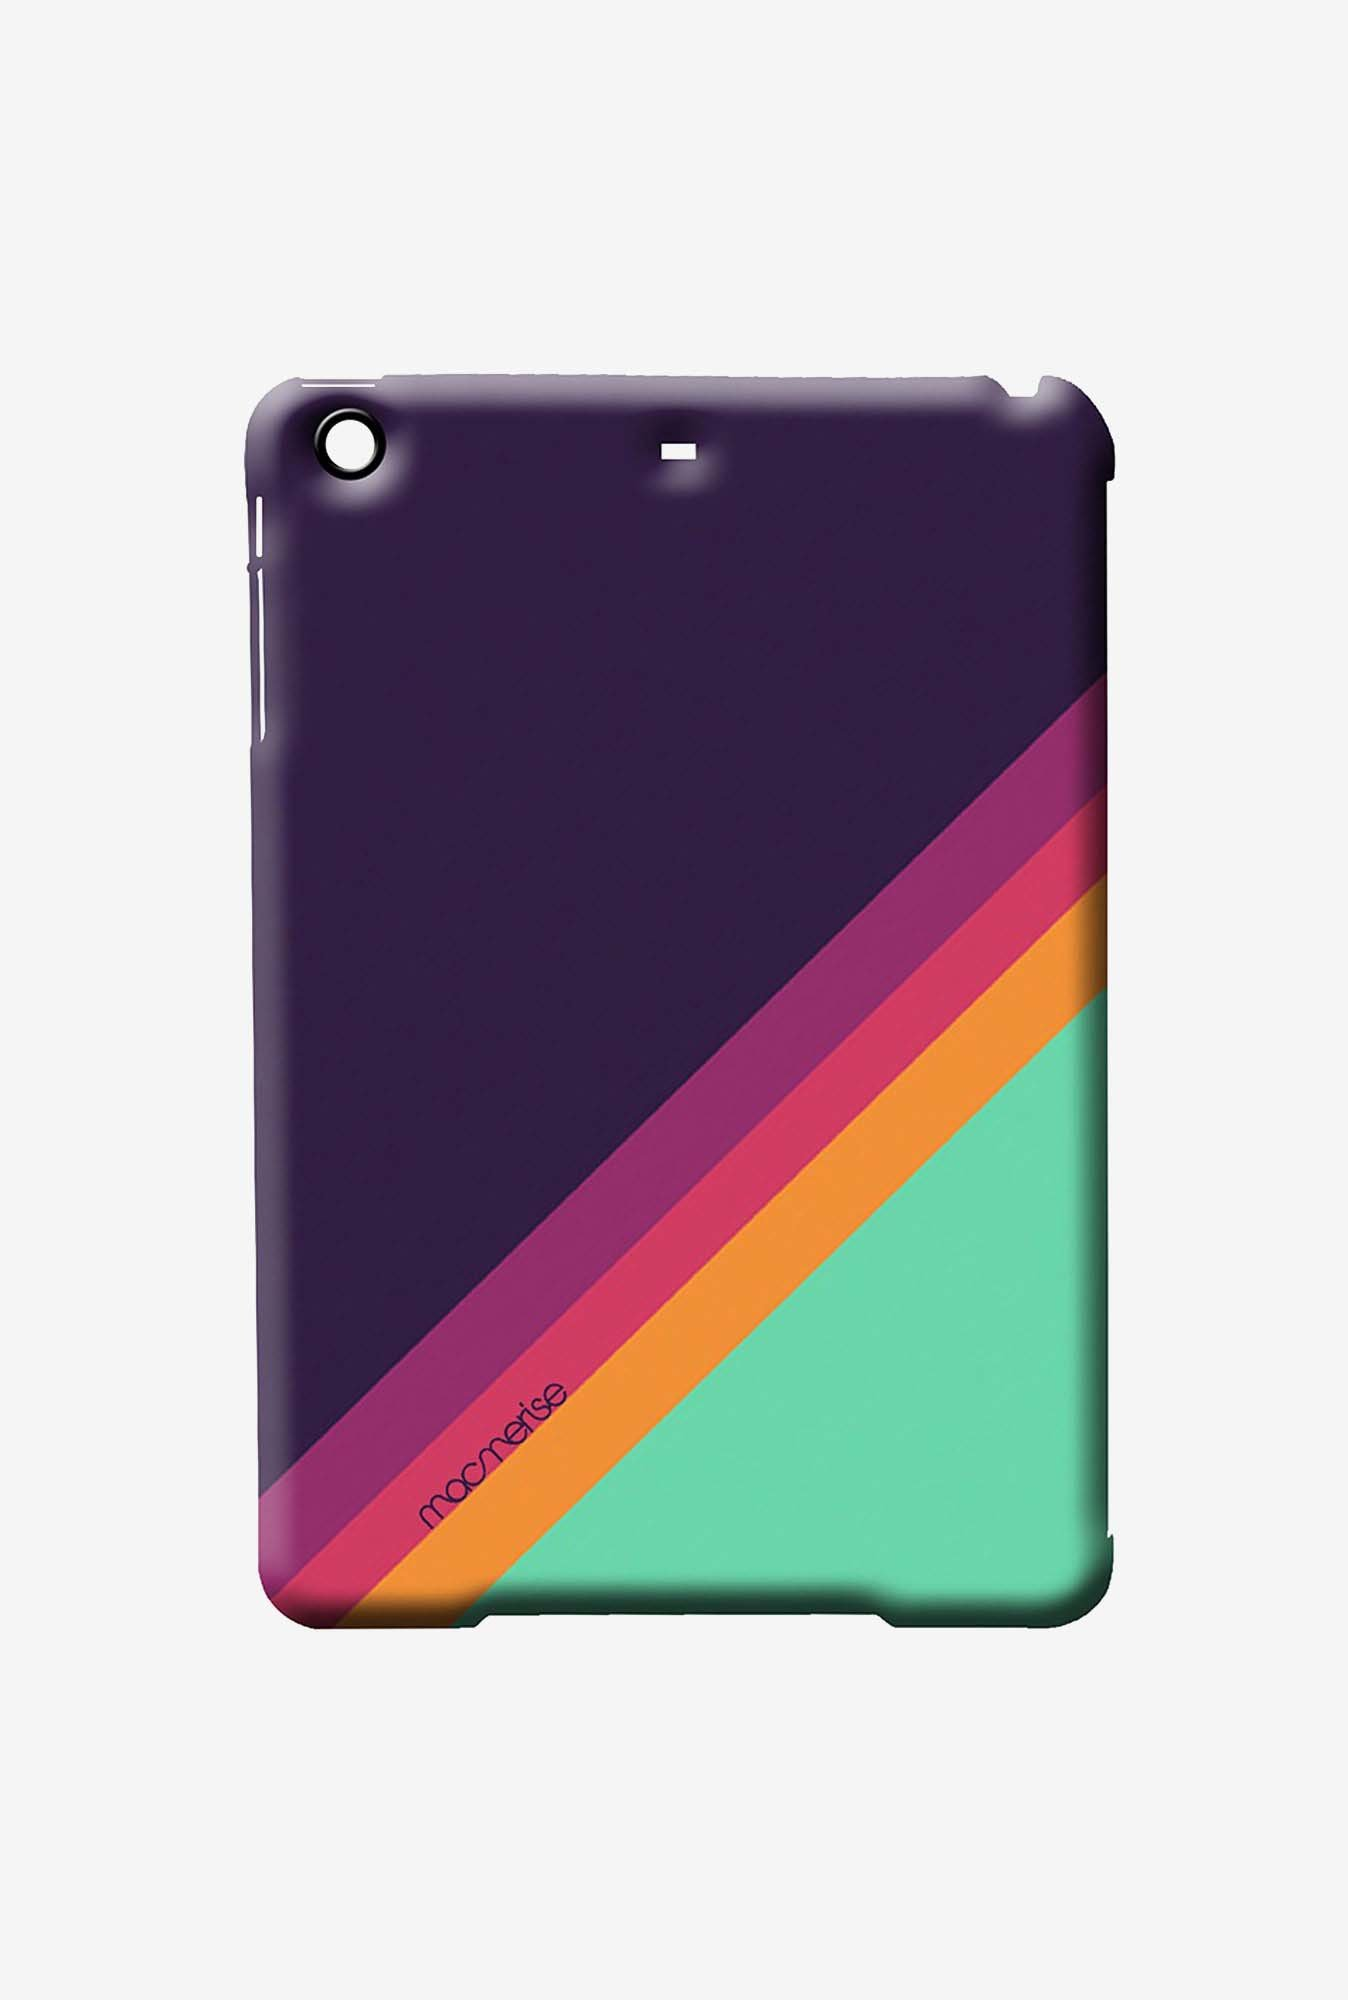 Macmerise Slope Stripes Purple Pro Case for iPad 2/3/4